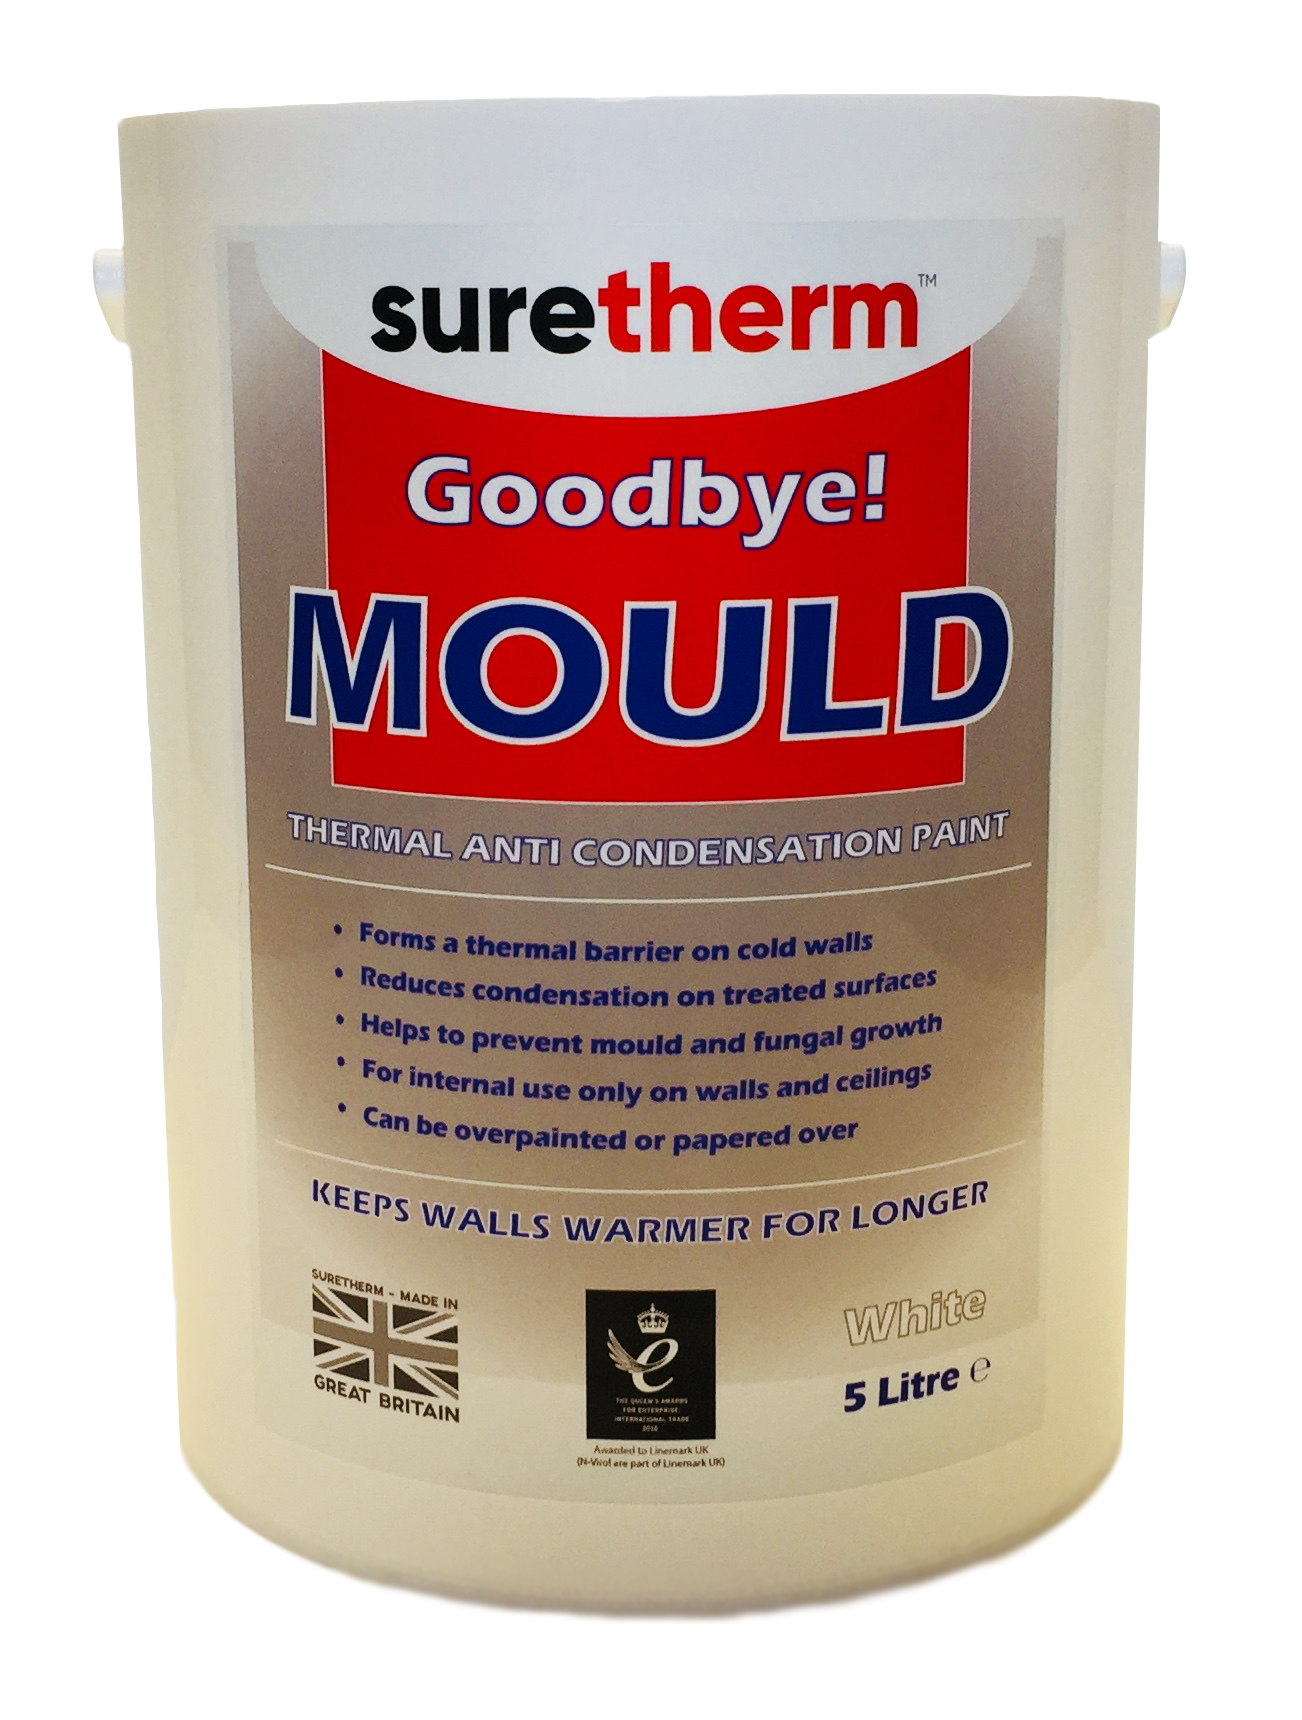 Suretherm Thermal Anti Condensation Paint 5 Litre